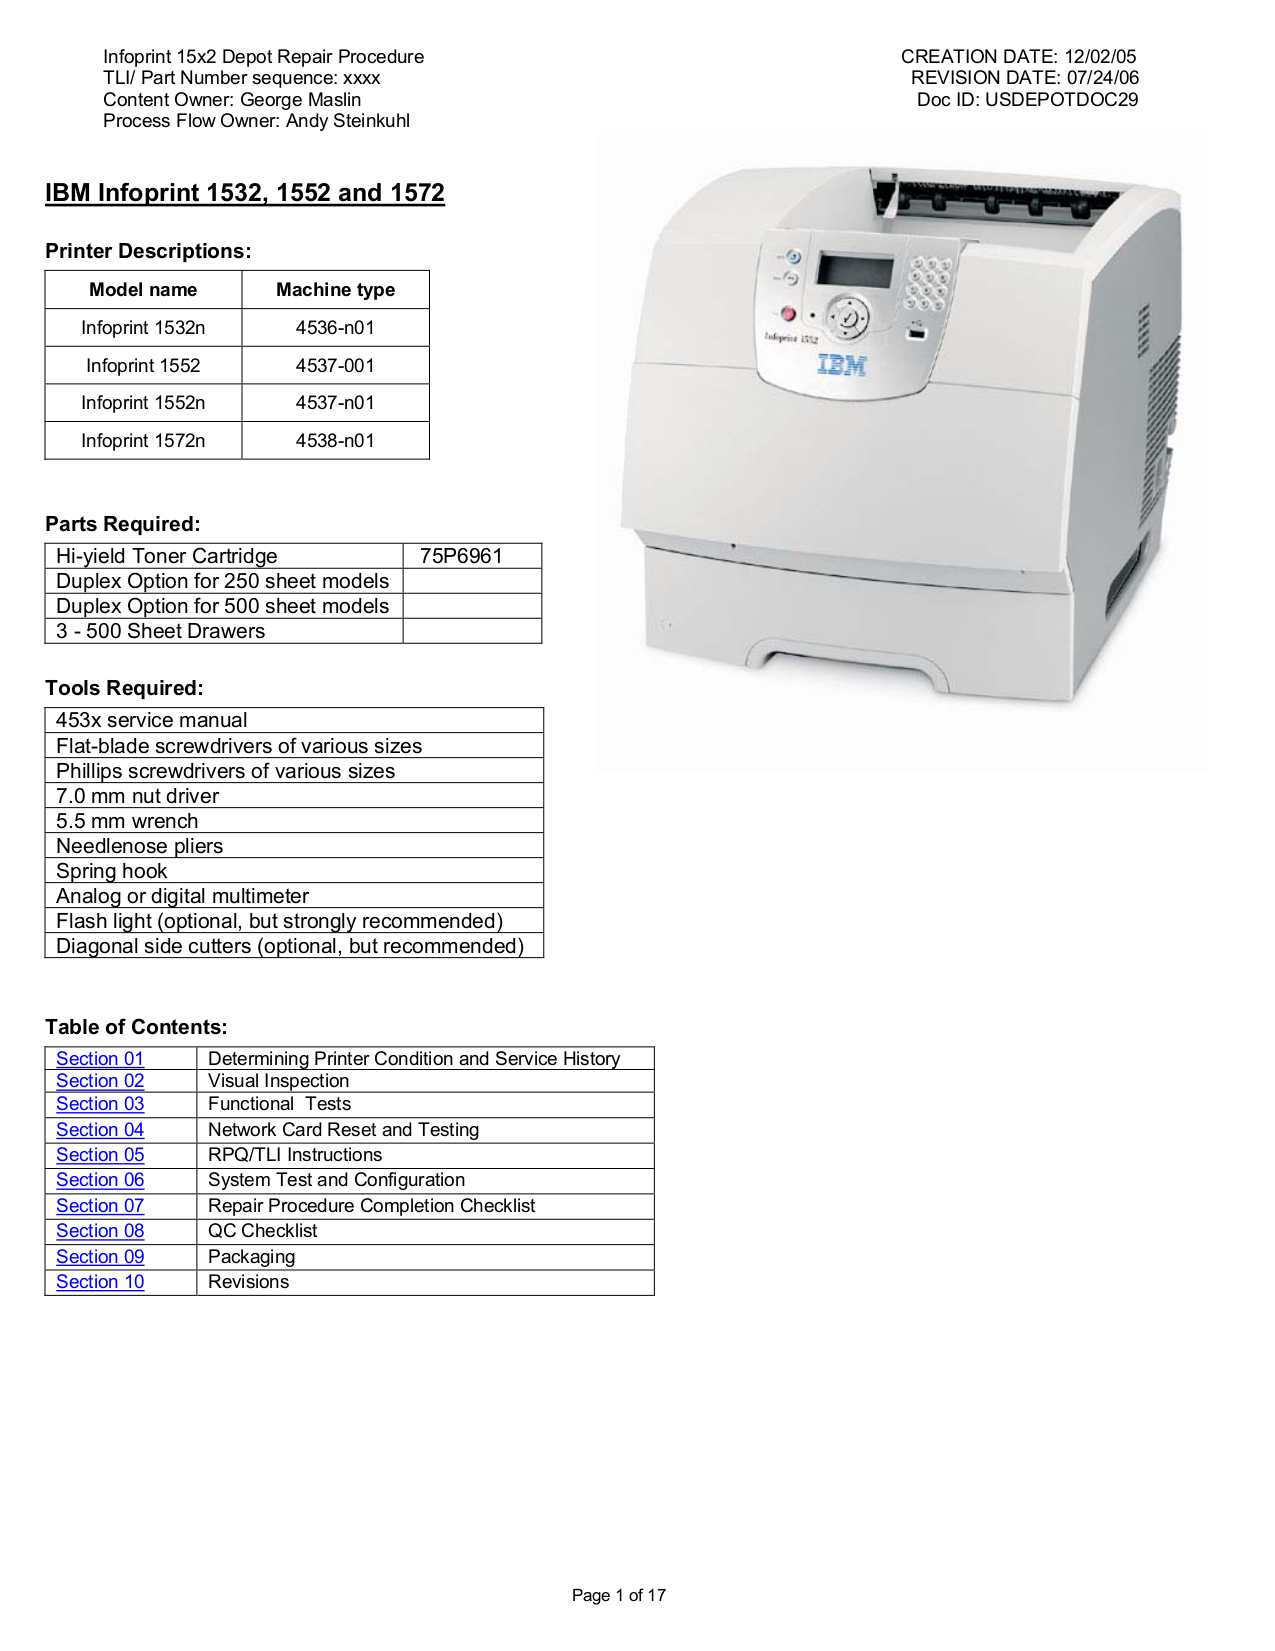 ibm printer service manual how to and user guide instructions u2022 rh taxibermuda co IBM Impact Printers for Adhesive Labels ibm 6400 printer manual pdf